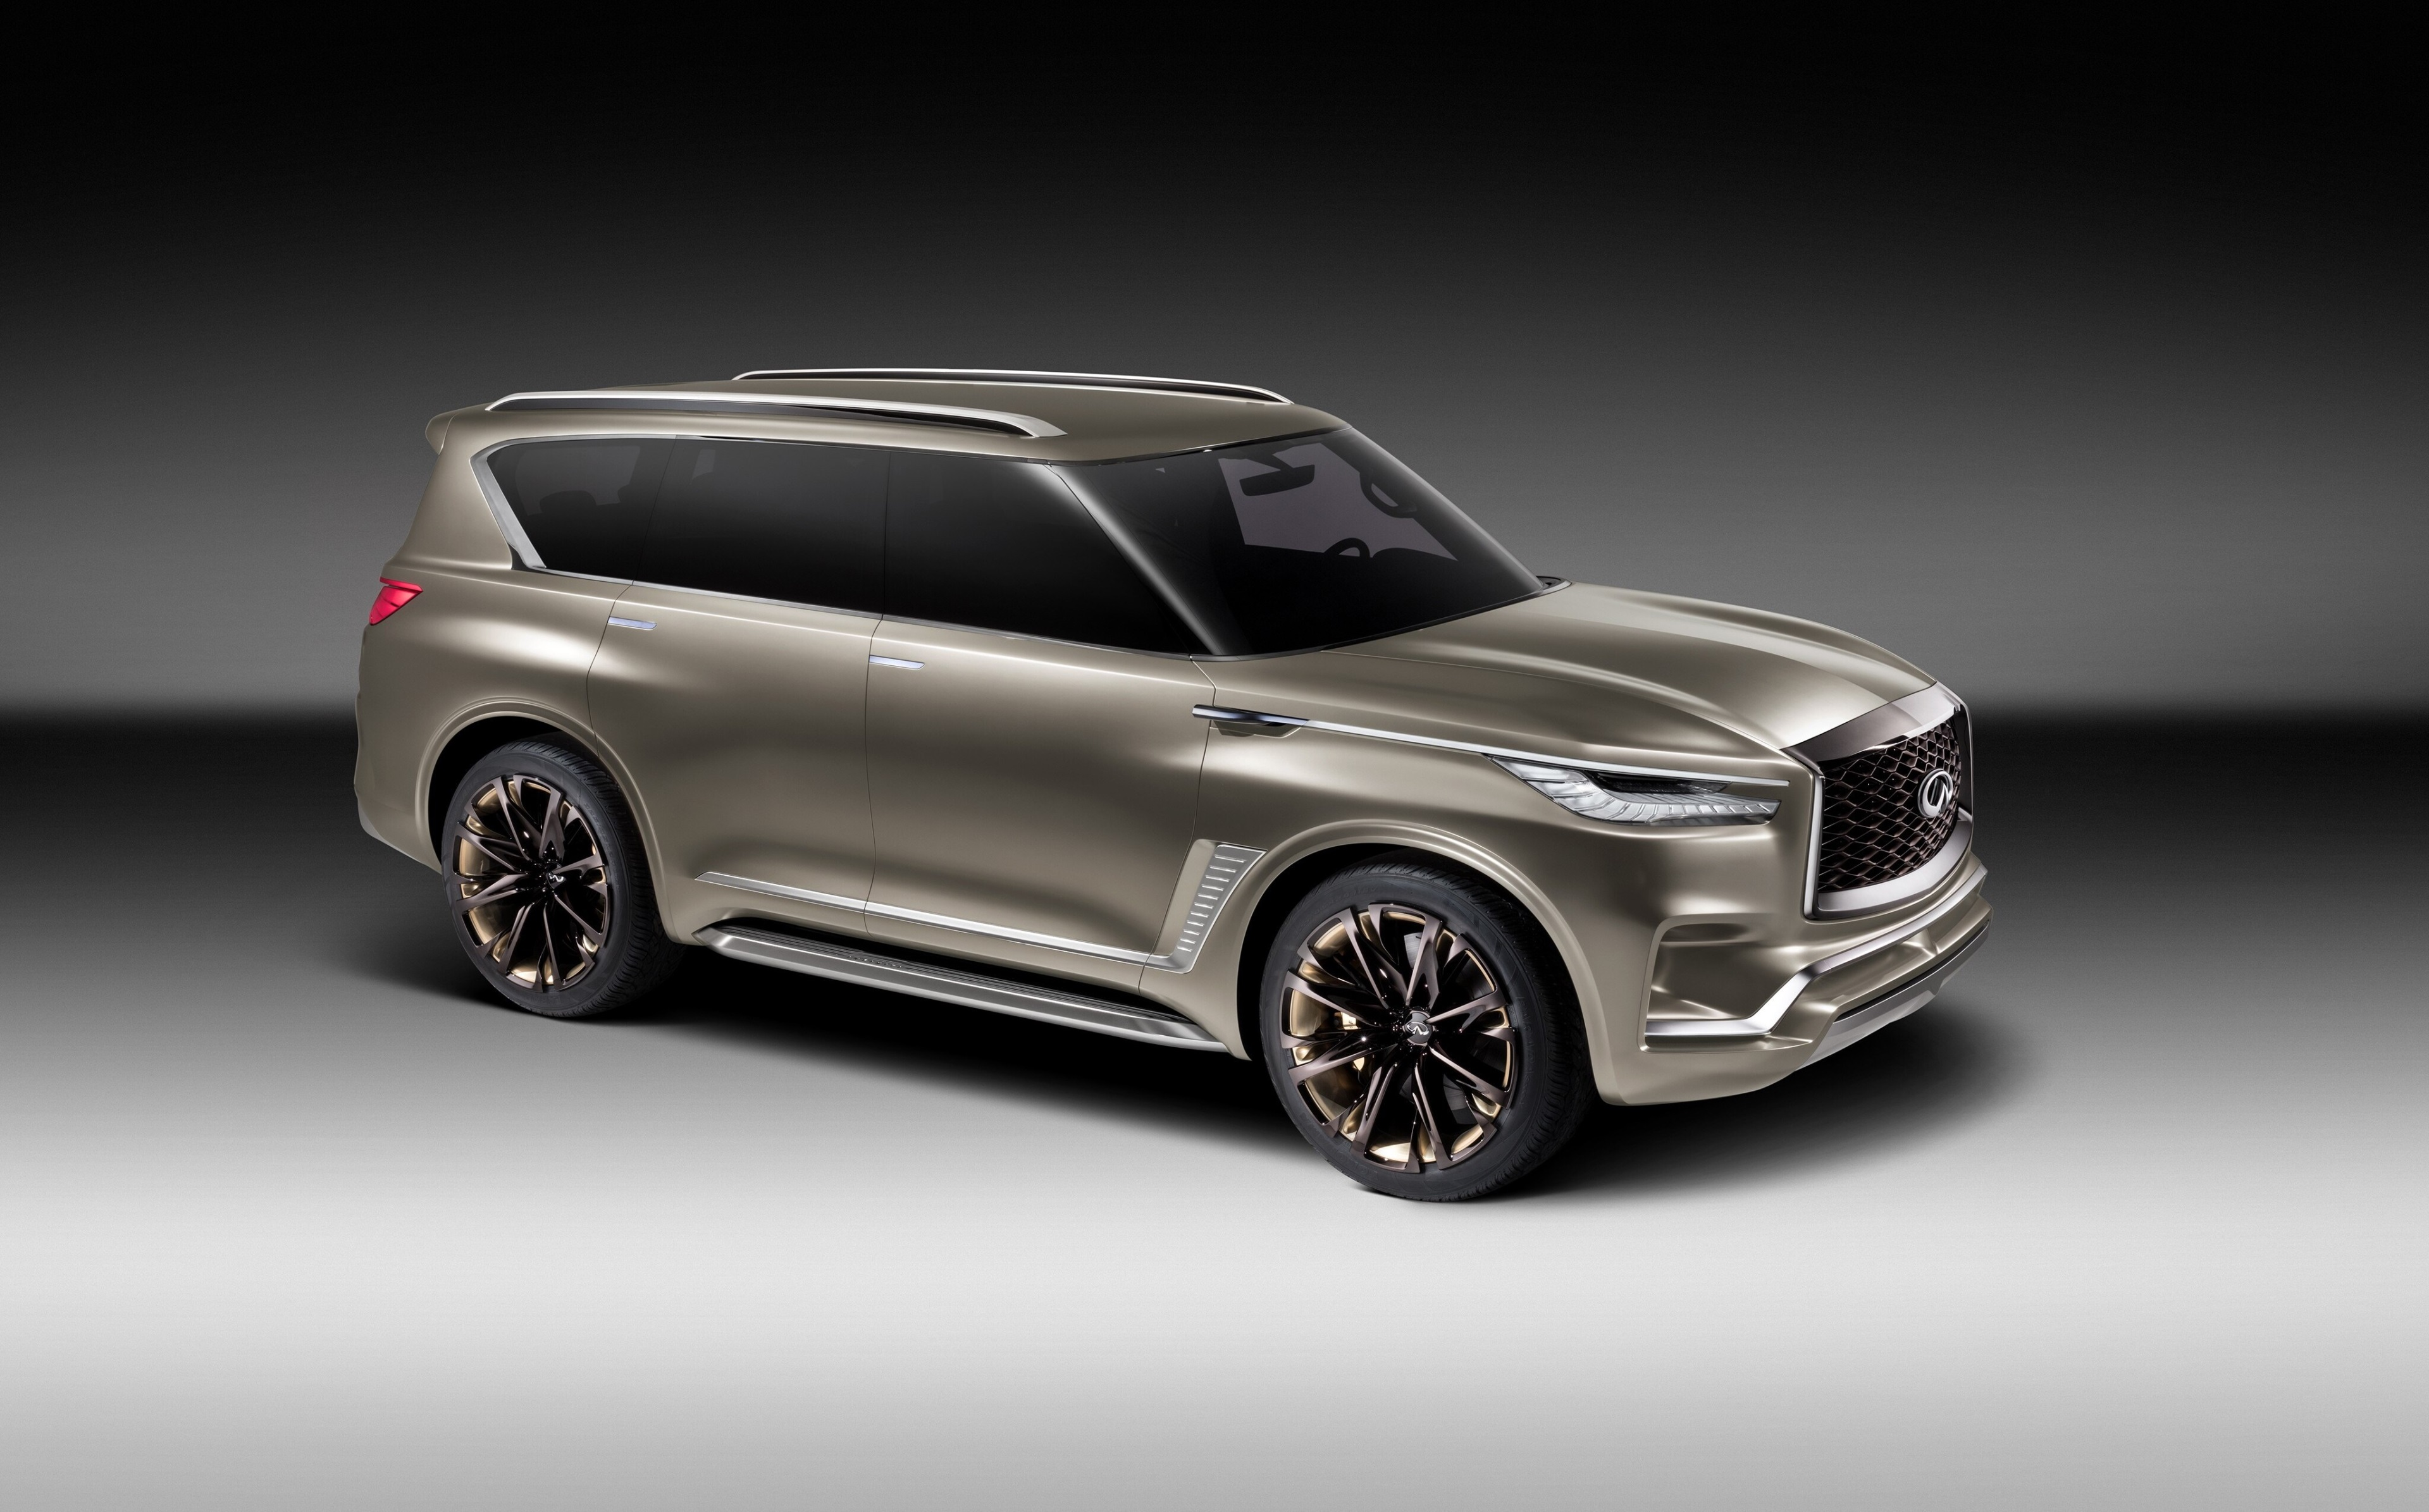 3840x2391 - Infiniti QX80 Wallpapers 36